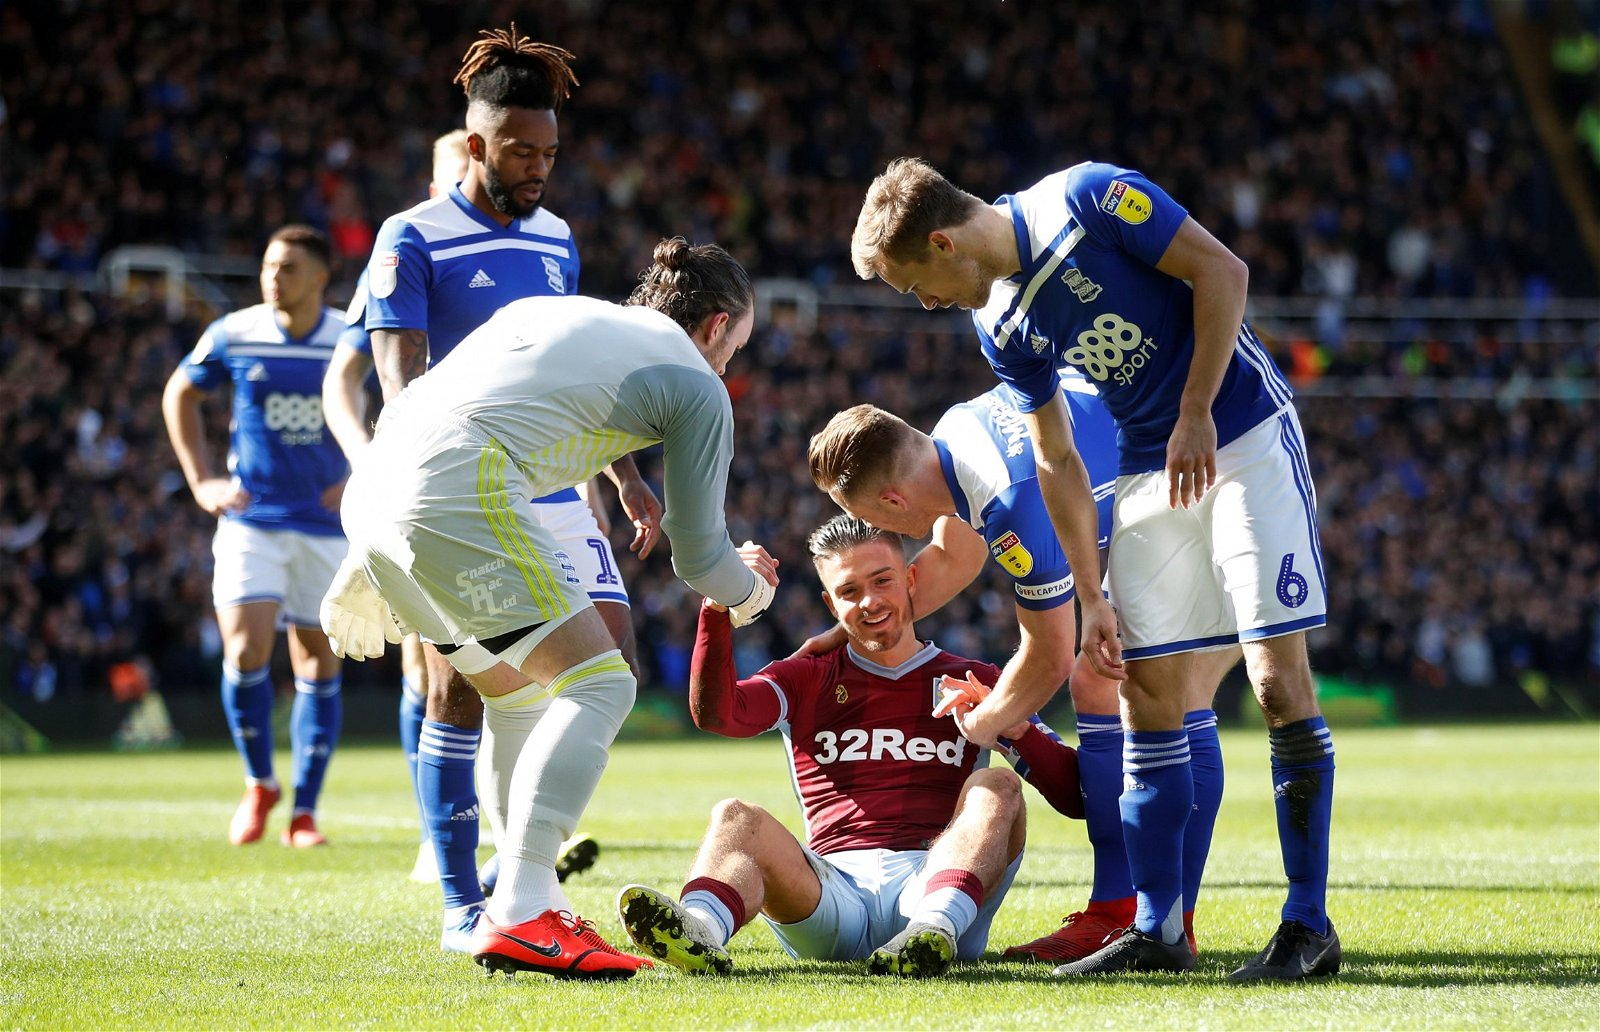 Birmingham City players check Aston Villa star Jack Grealish is ok after shock fan incident